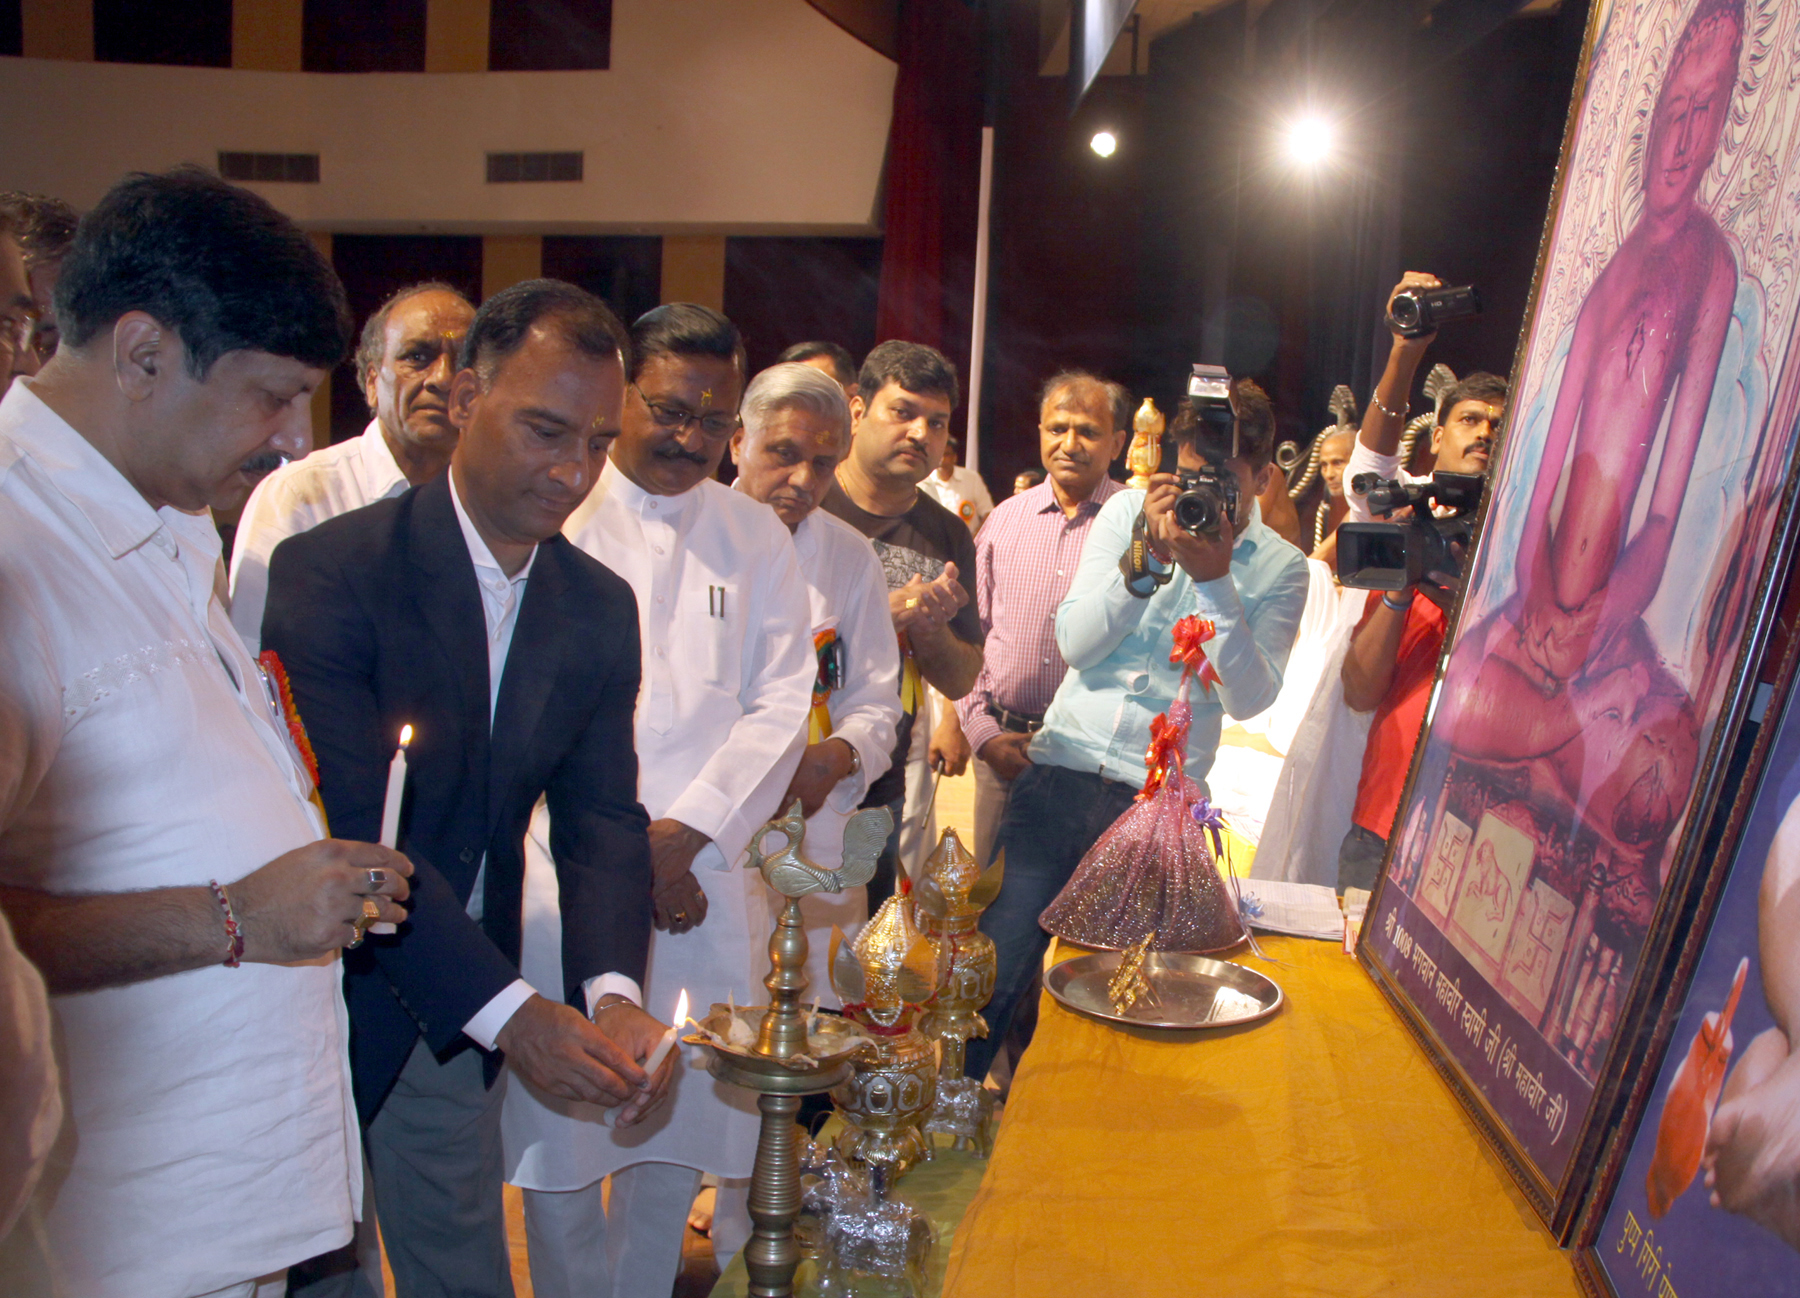 The Adviser to the Administrator, UT, Chandigarh, Mr. Vijay Dev lighting the traditional lamp at the inauguration of Chaturmas Sthapna Diwas at Moti Ram Arya Senior Secondary Model School, Sector-27, Chandigarh on Sunday, August 02, 2015.